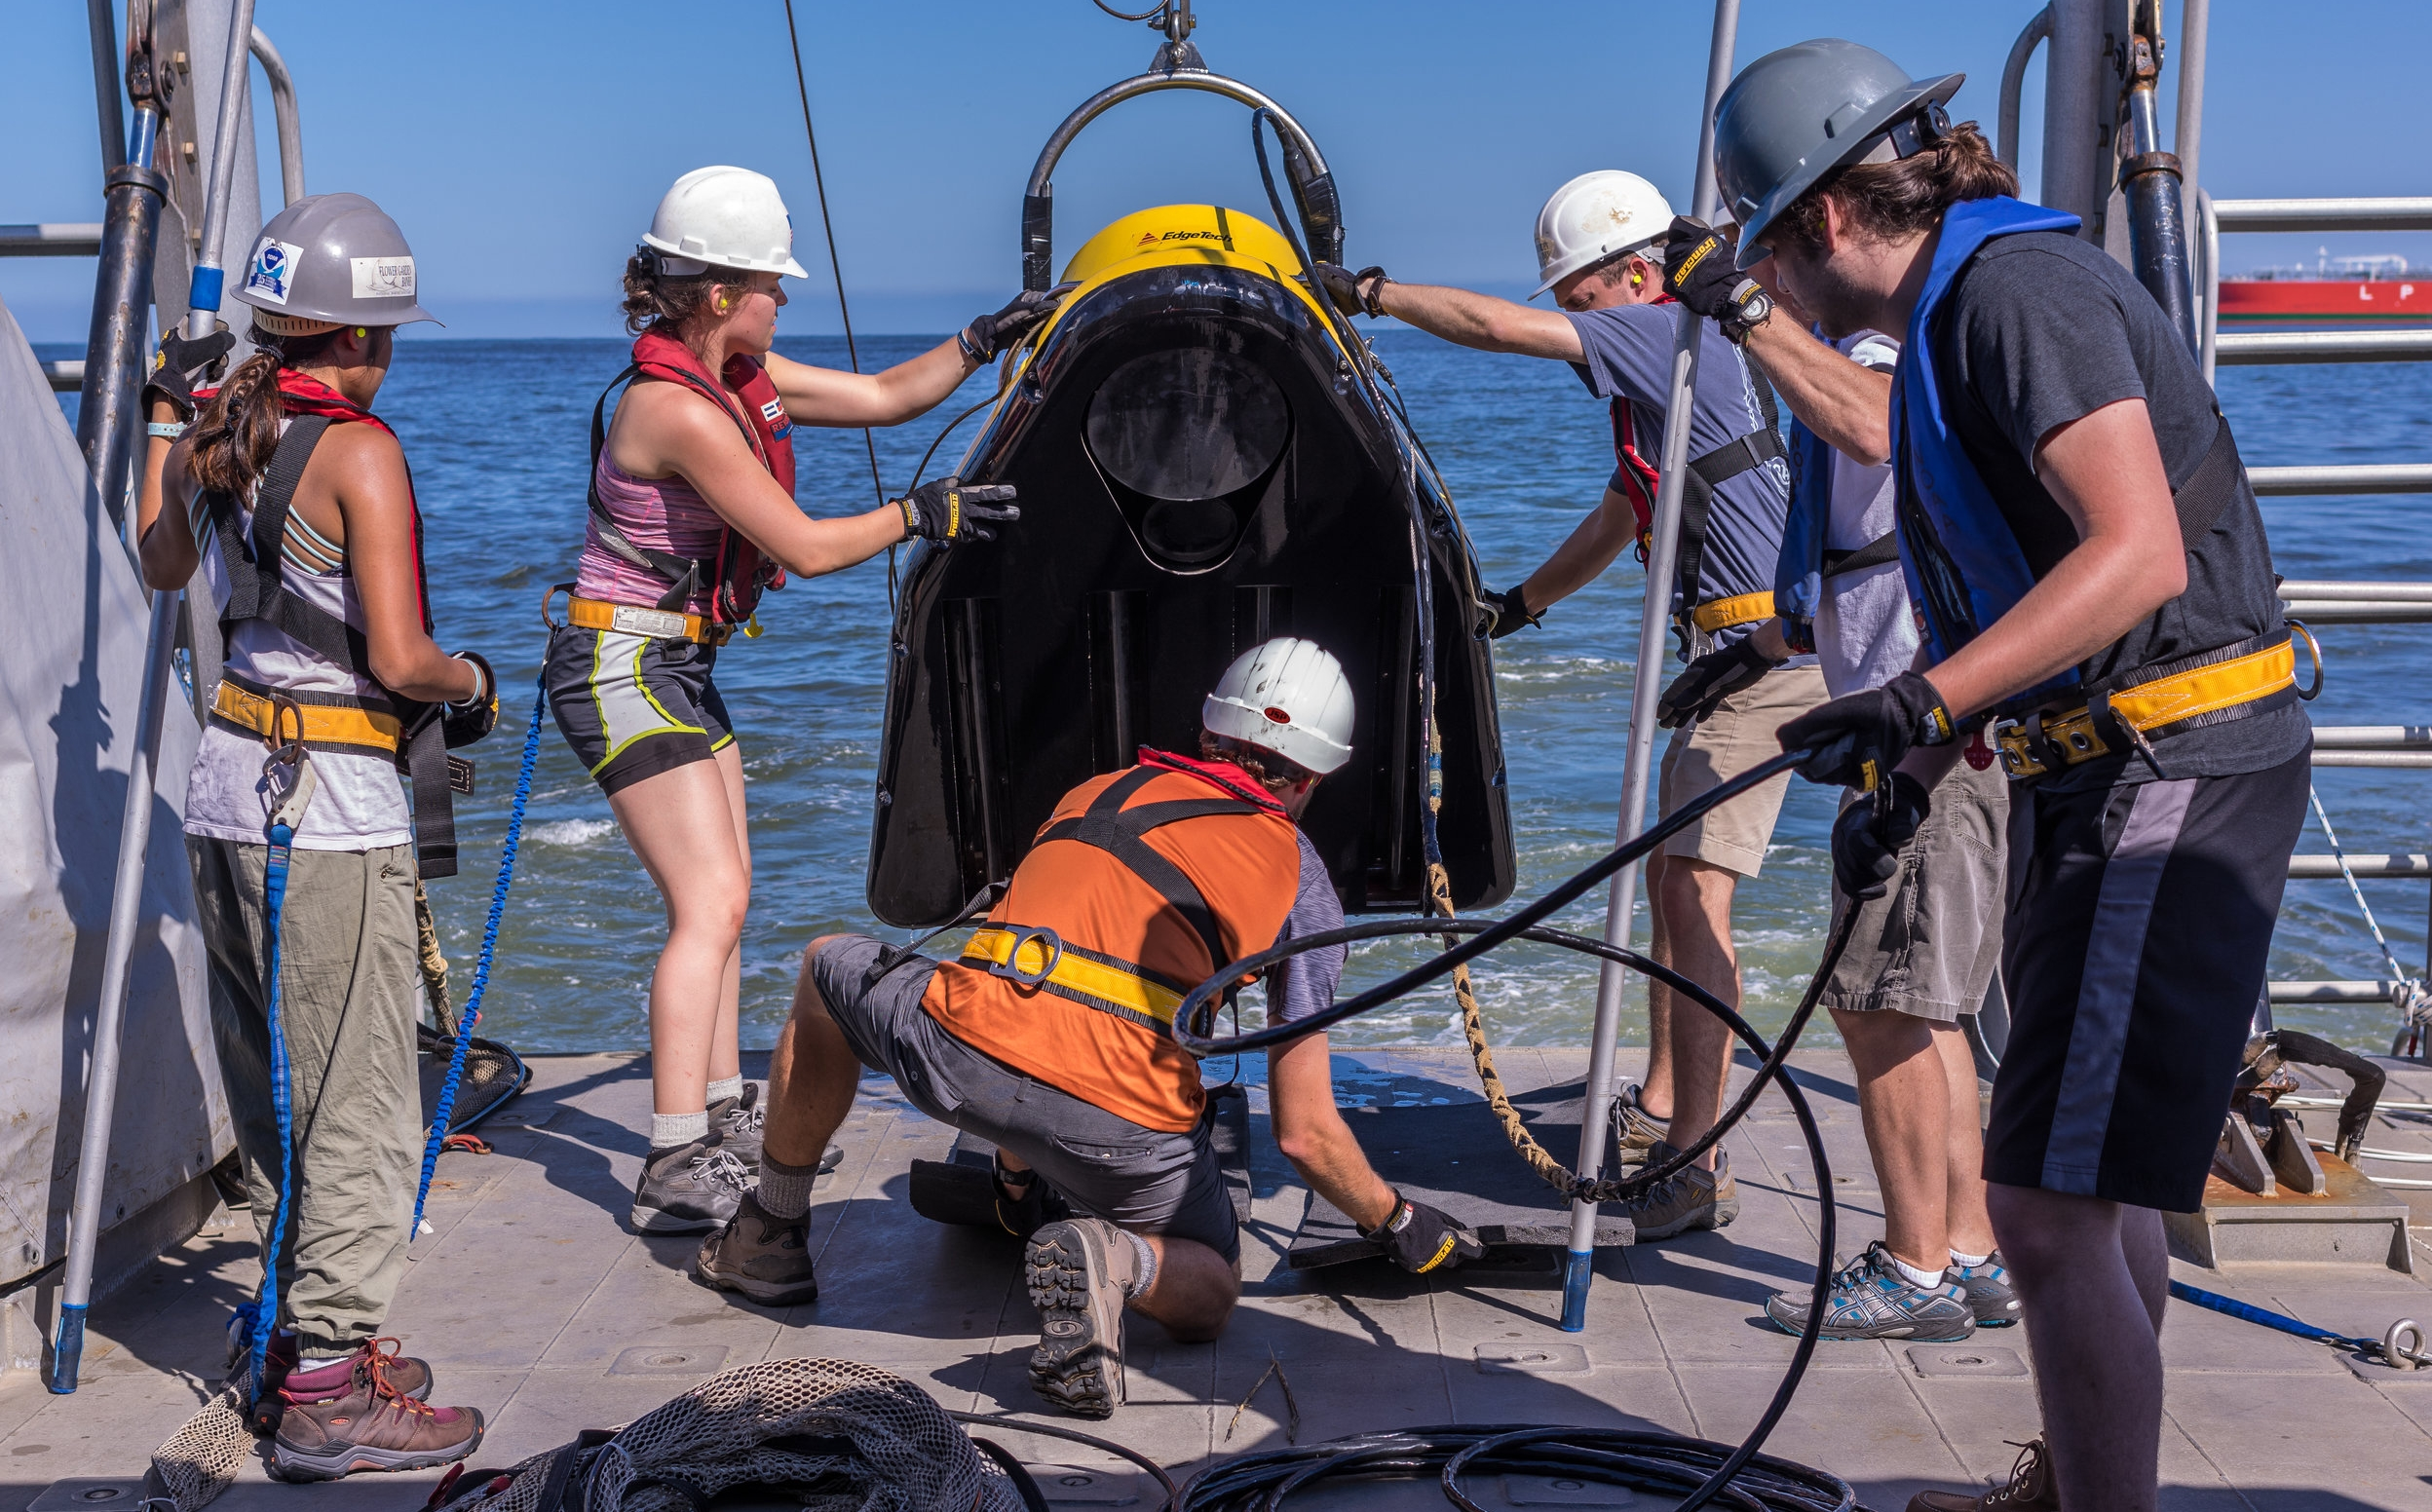 My research team deploying the CHIRP offshore of Galveston, TX